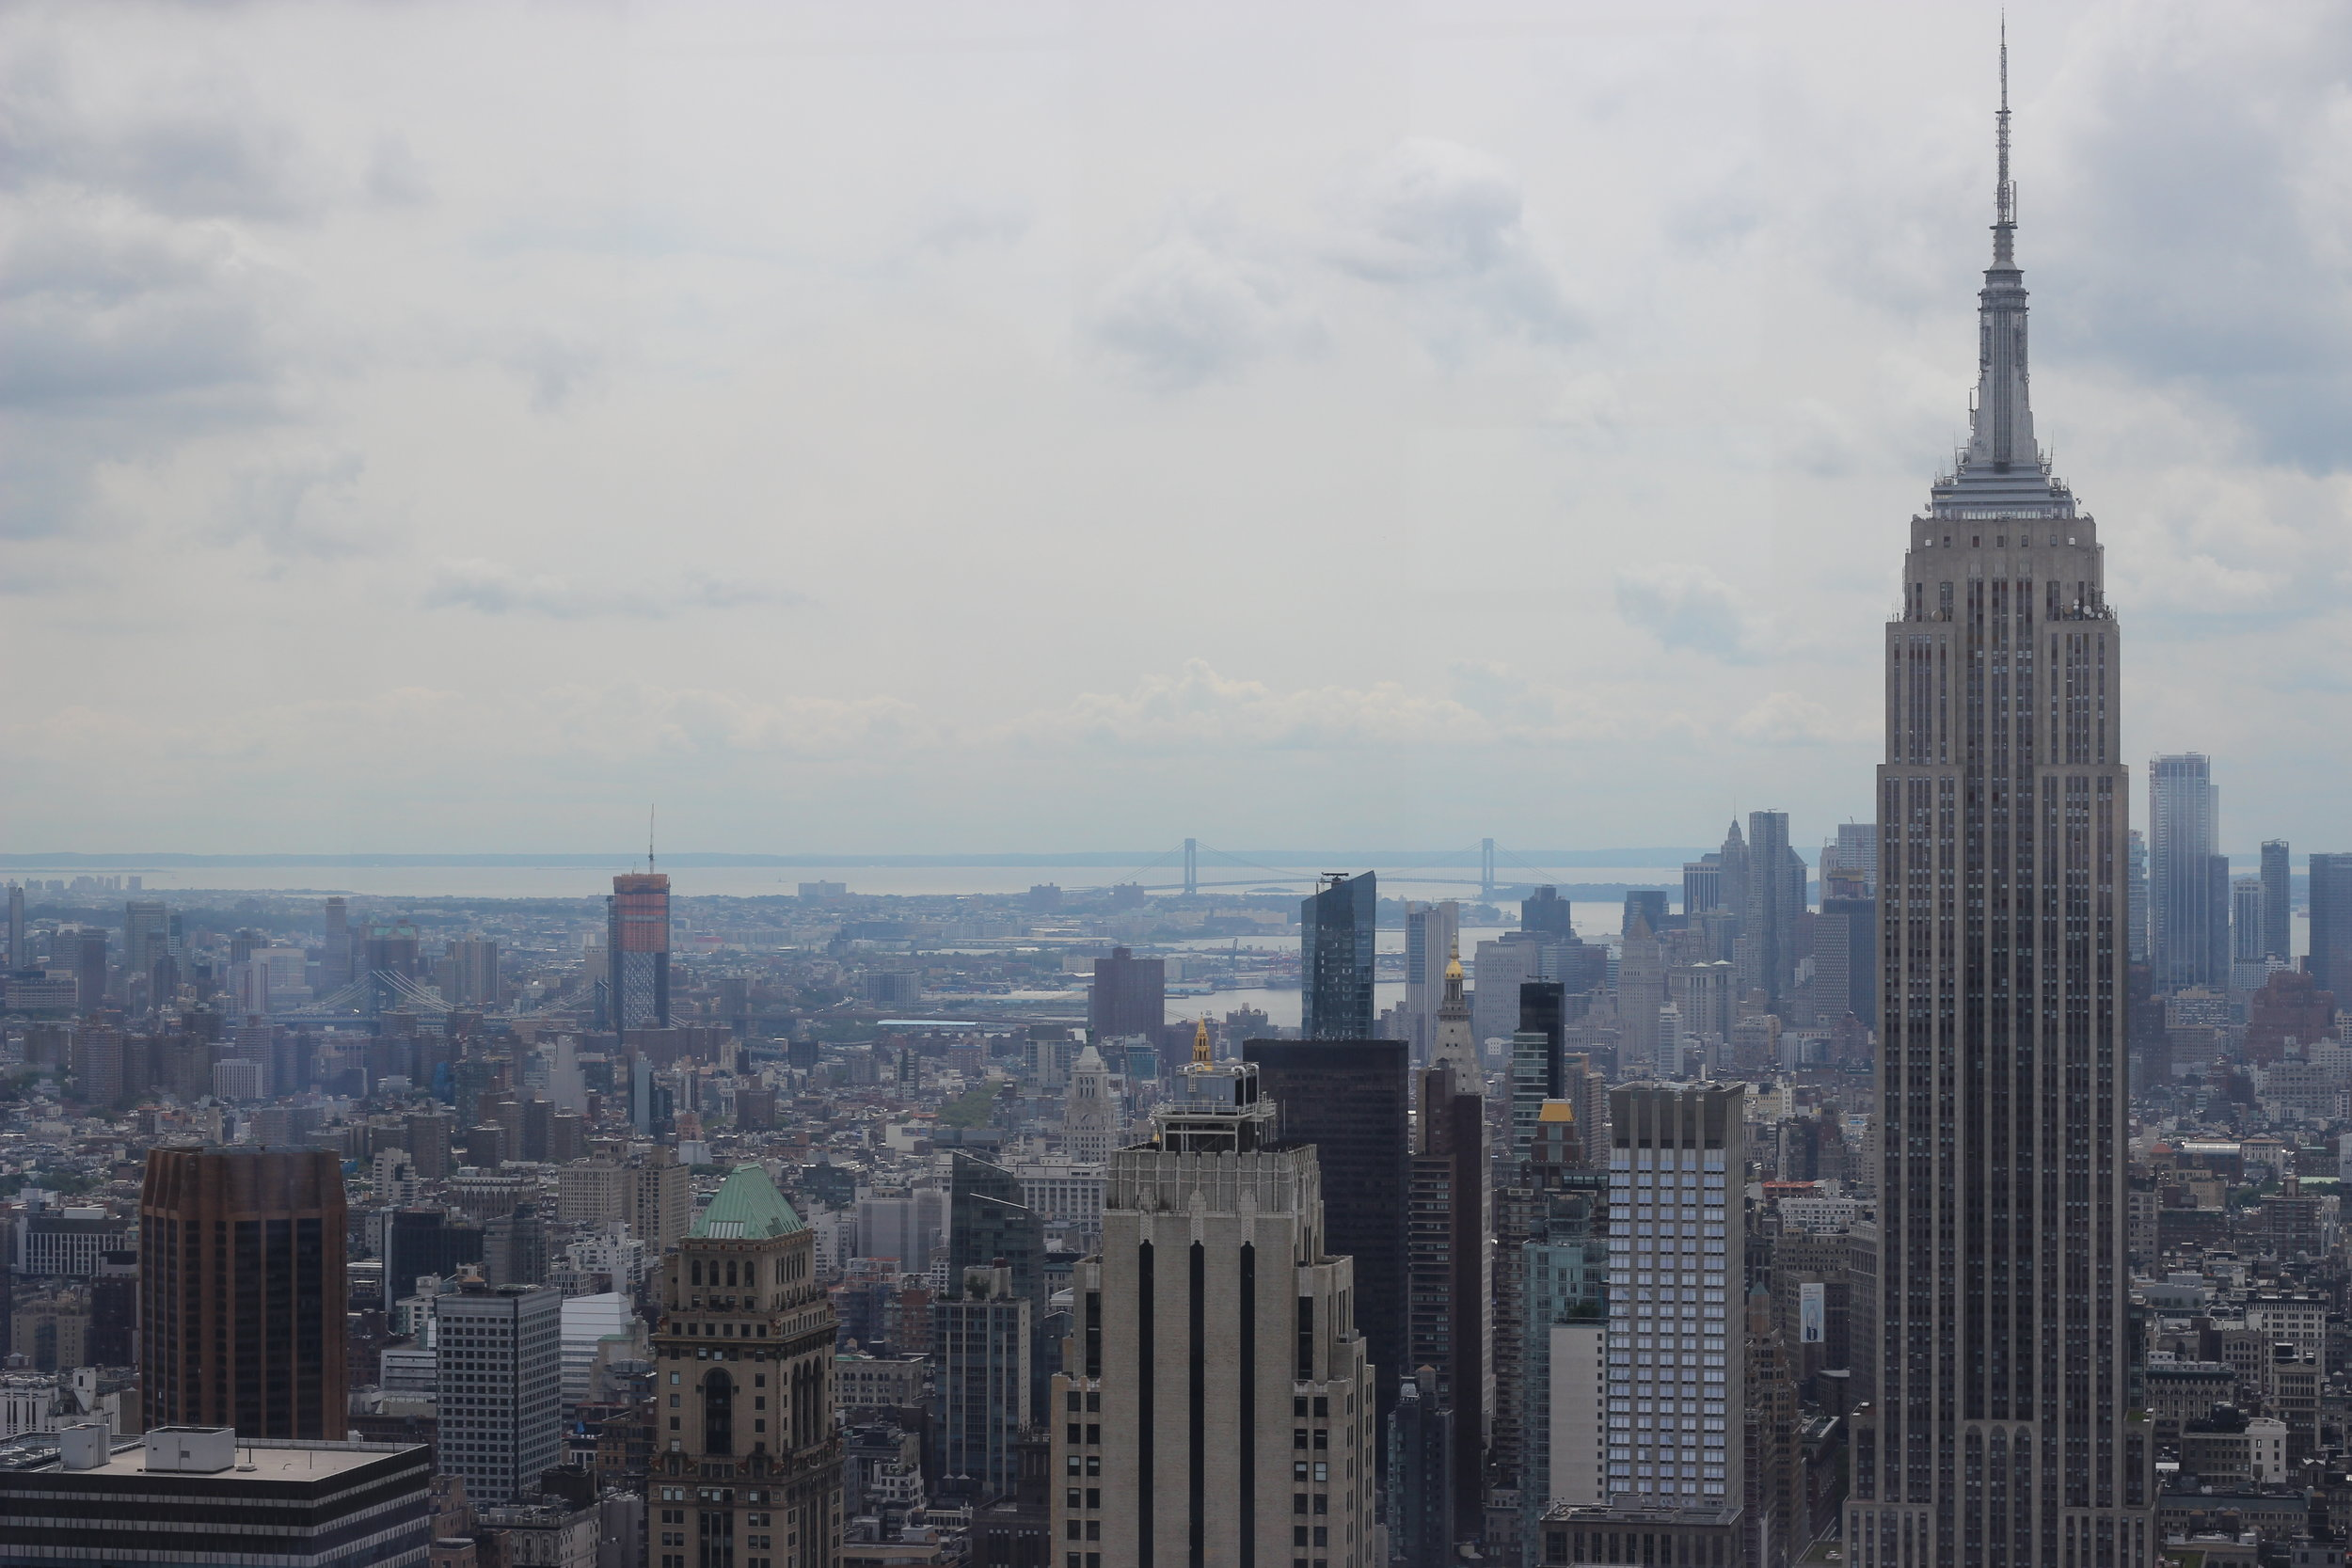 View from the Rockefeller Centre ft. The Empire State Building